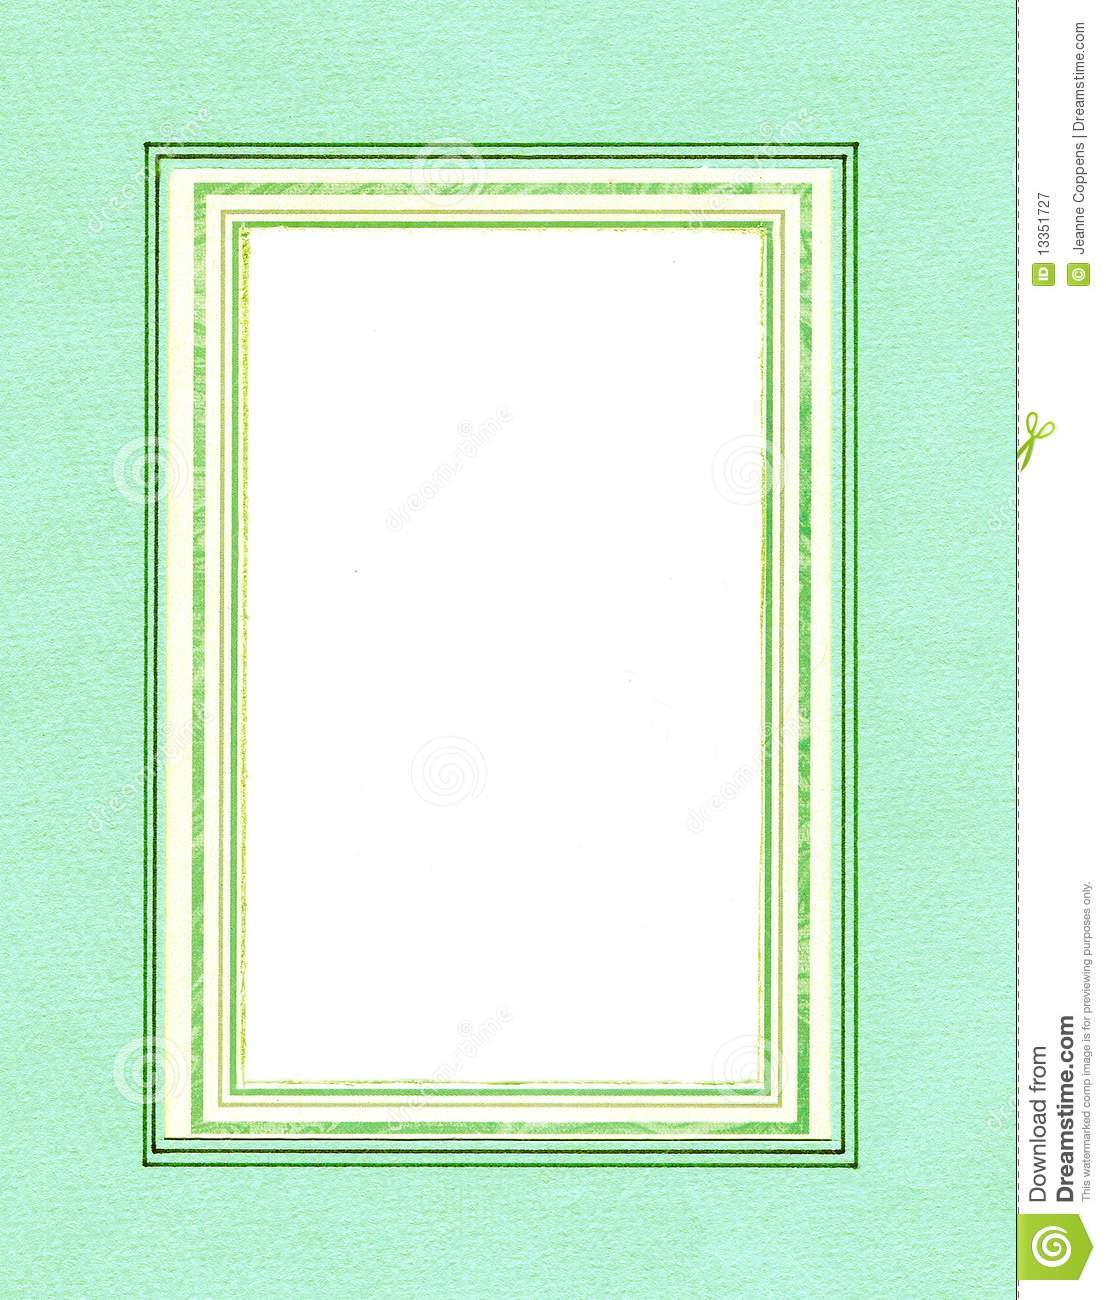 green mint frame  stock image  image of photo  blank